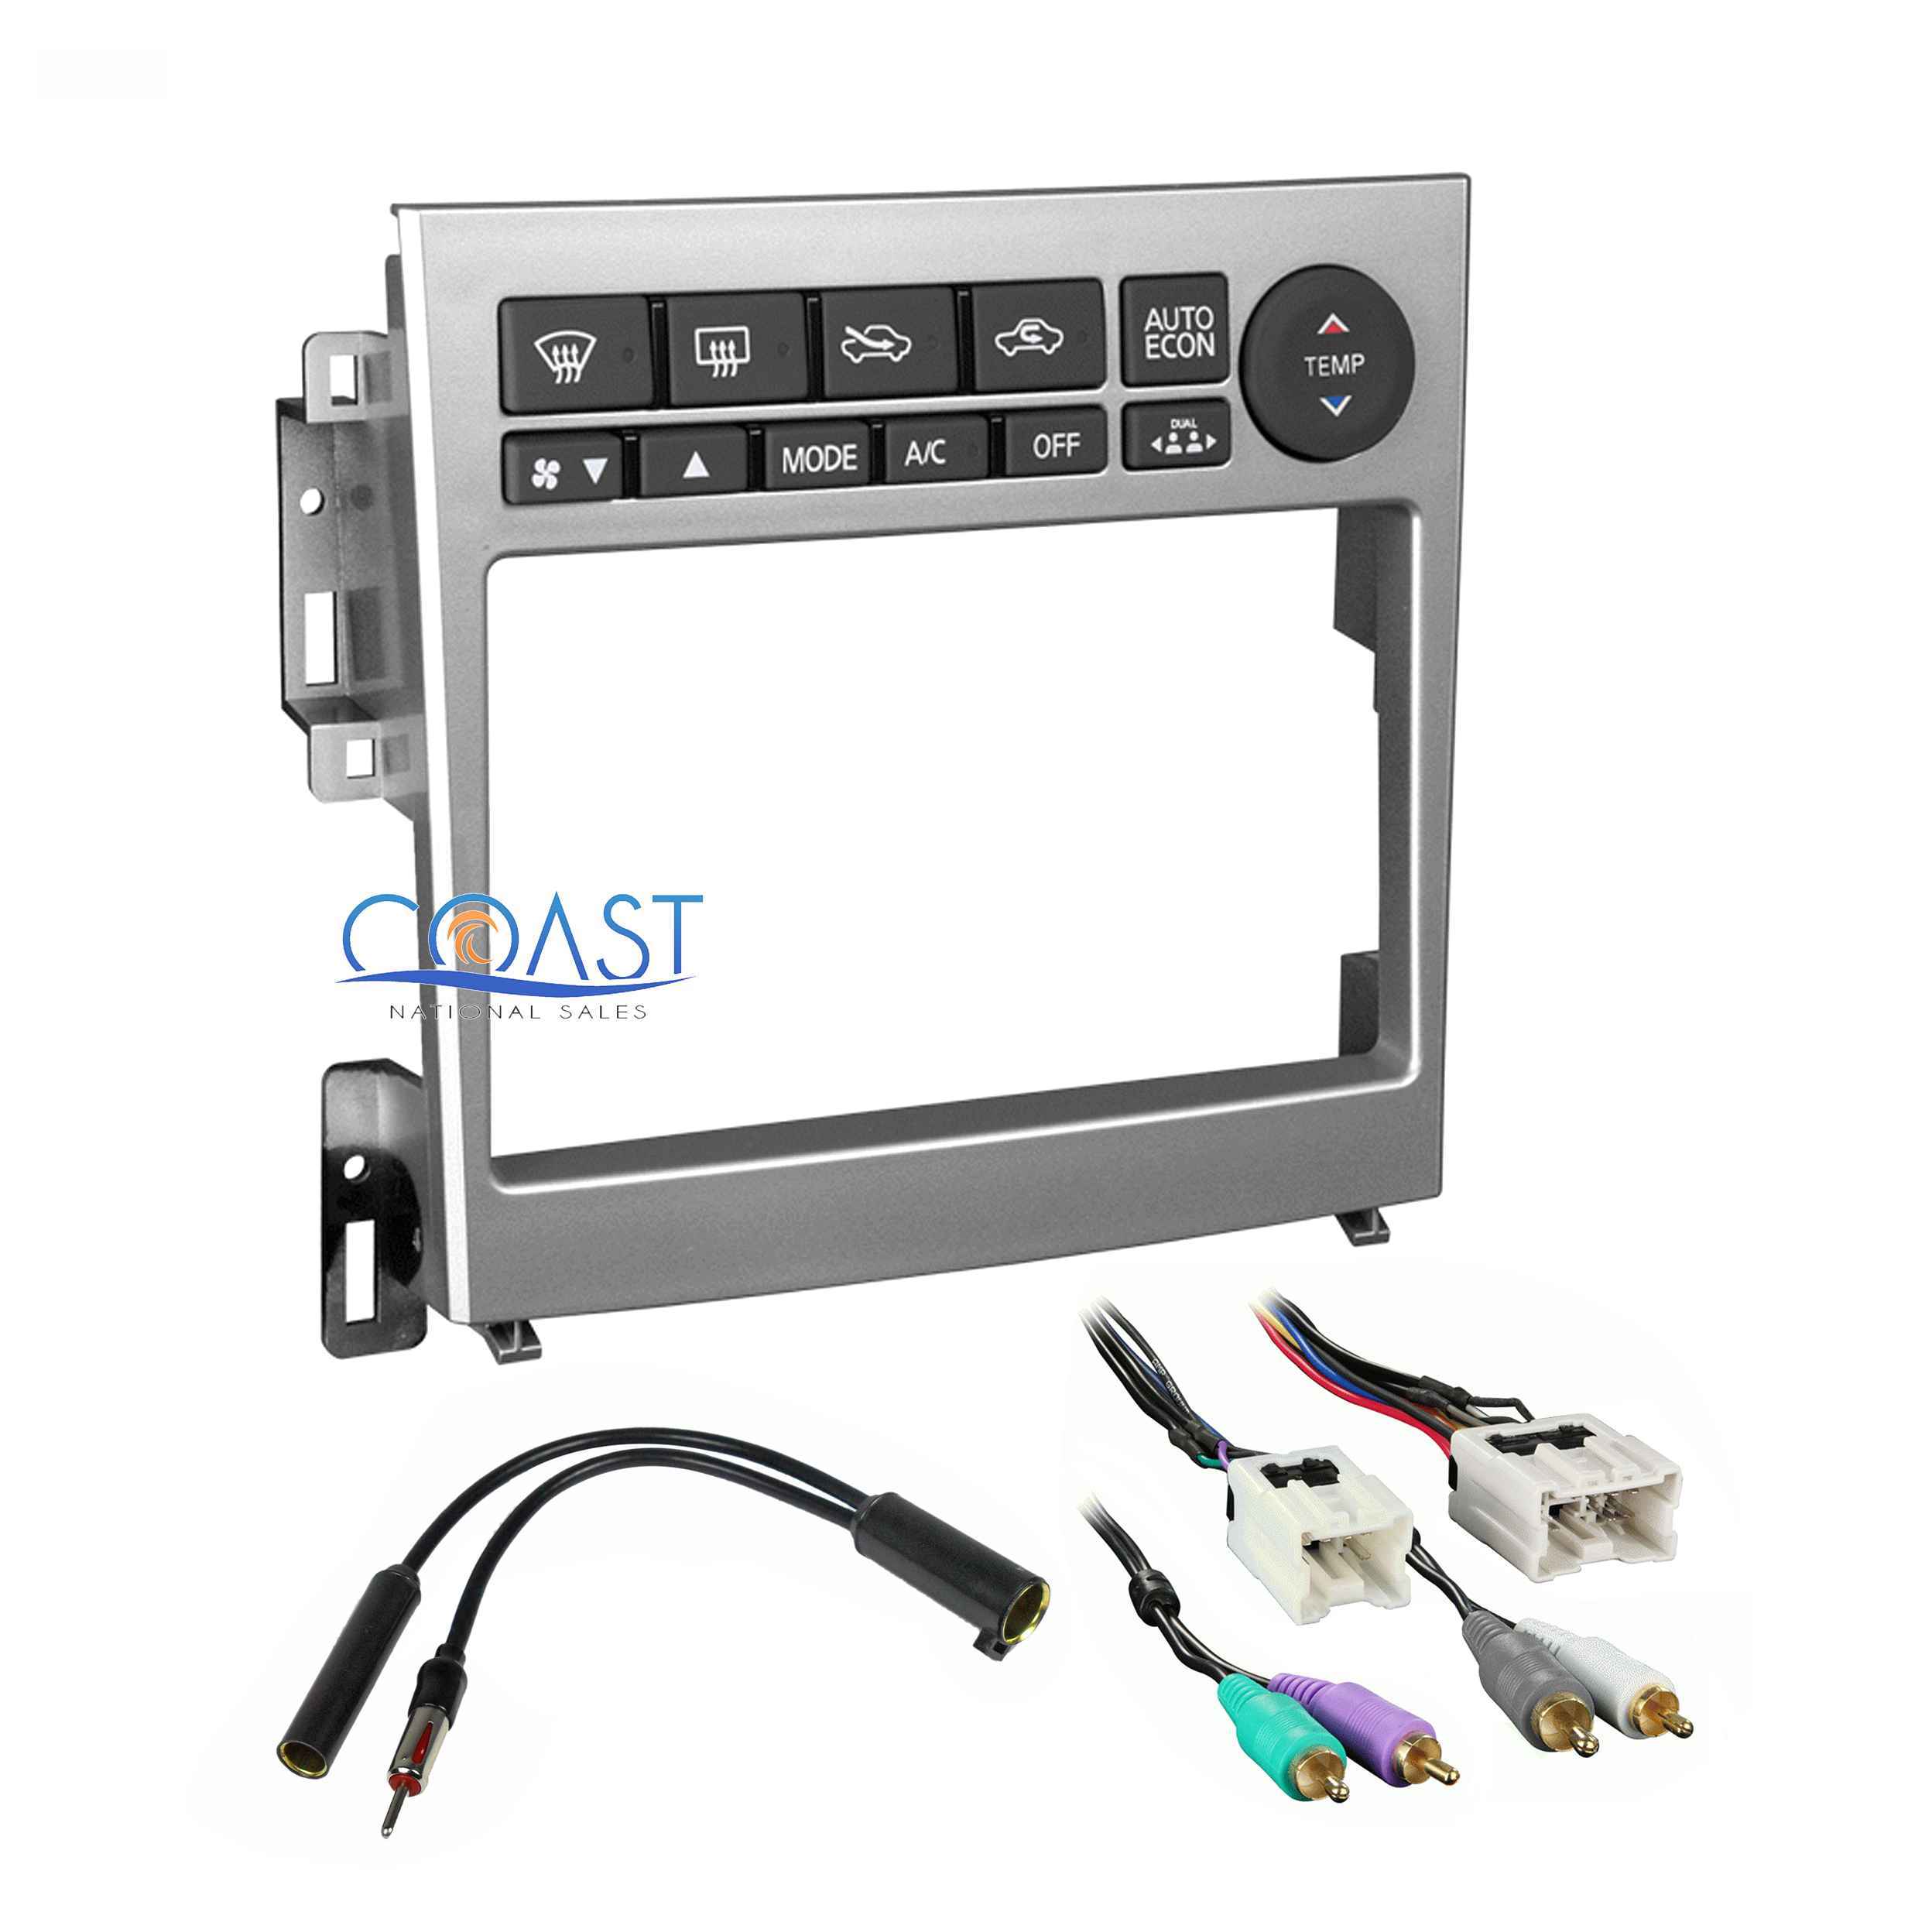 Details About Double Din Stereo Aluminum Dash Kit Harness Antenna For 2005 2007 Infiniti G35